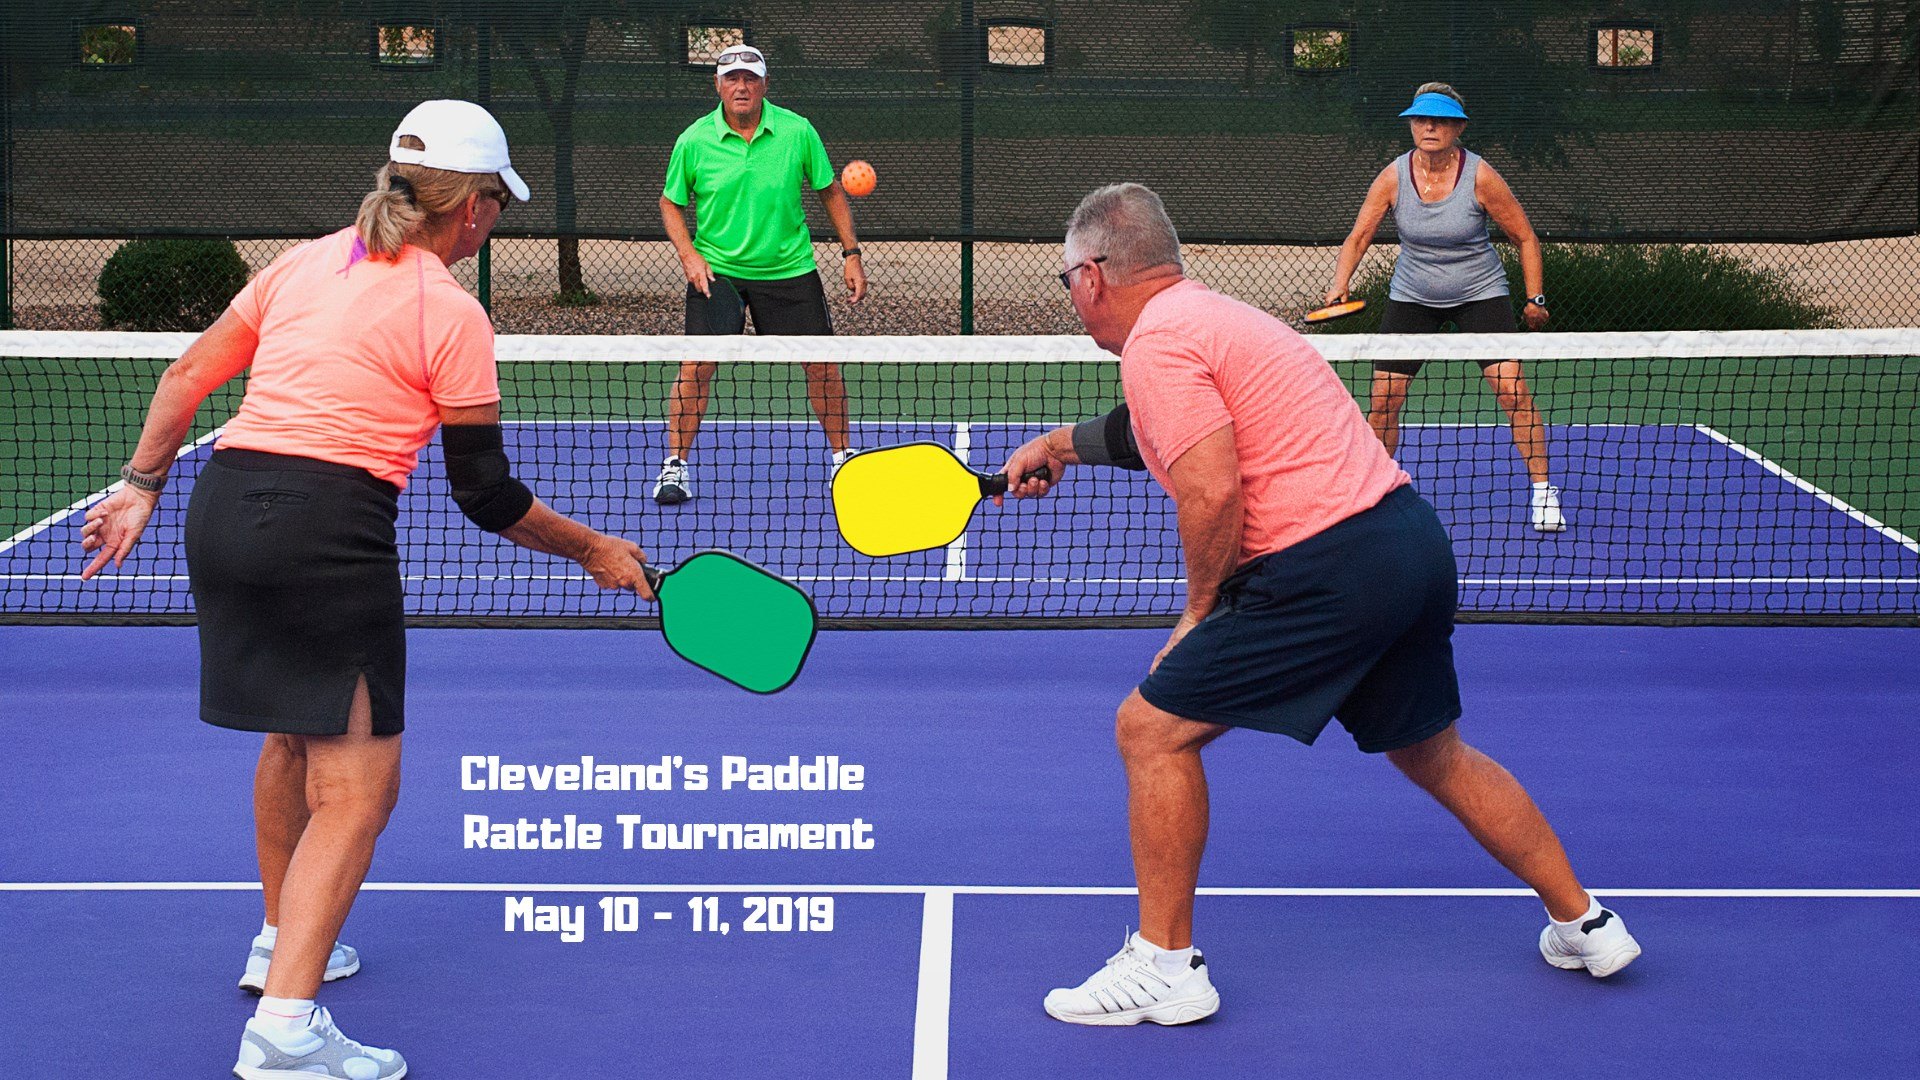 Cleveland's Paddle Rattle Tournament